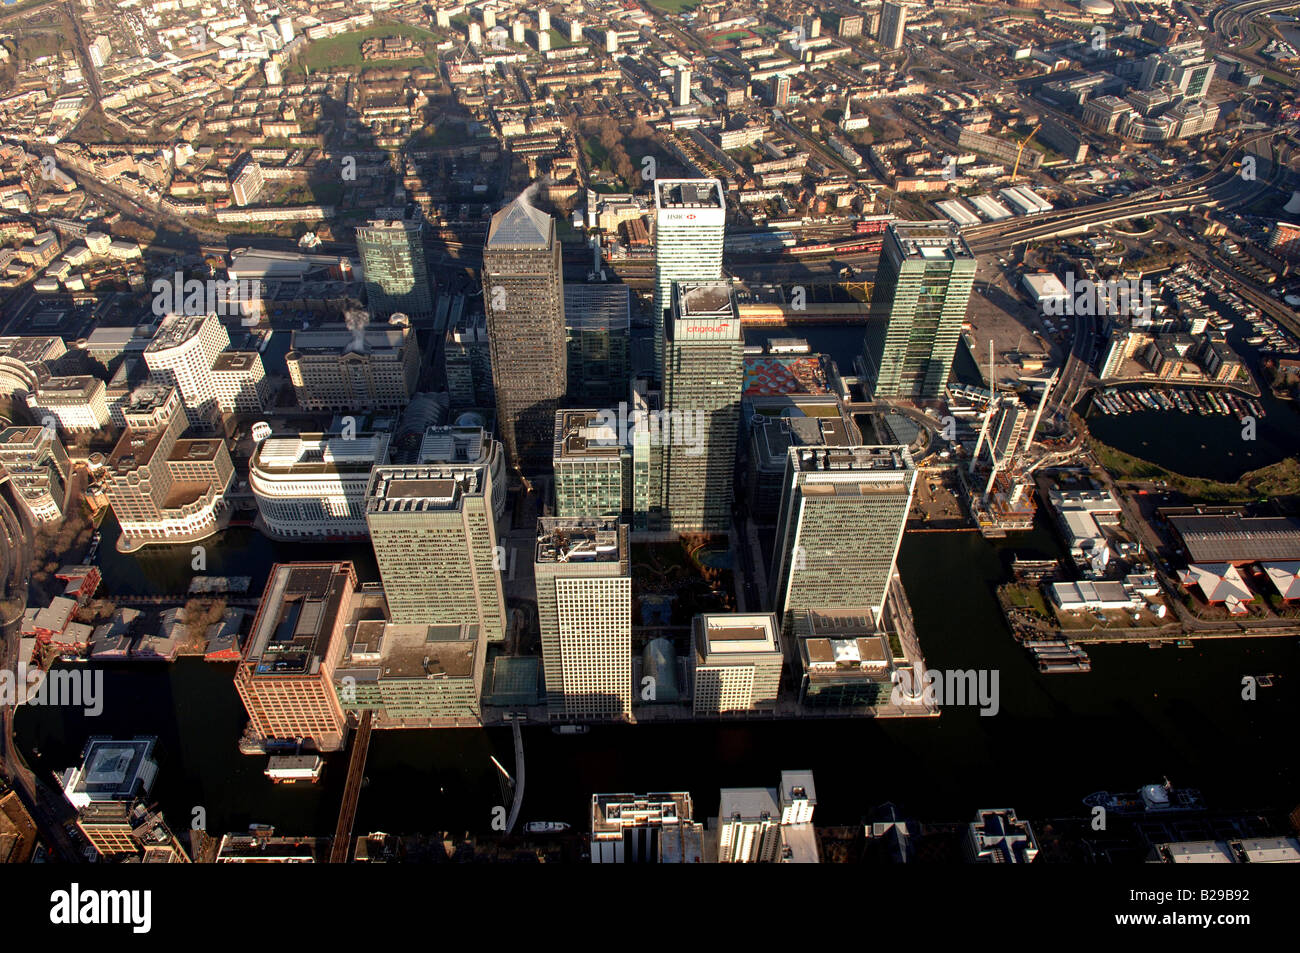 Canary Wharf Date 12 03 2008 Ref ZB648 111149 0015 COMPULSORY CREDIT World Pictures Photoshot - Stock Image